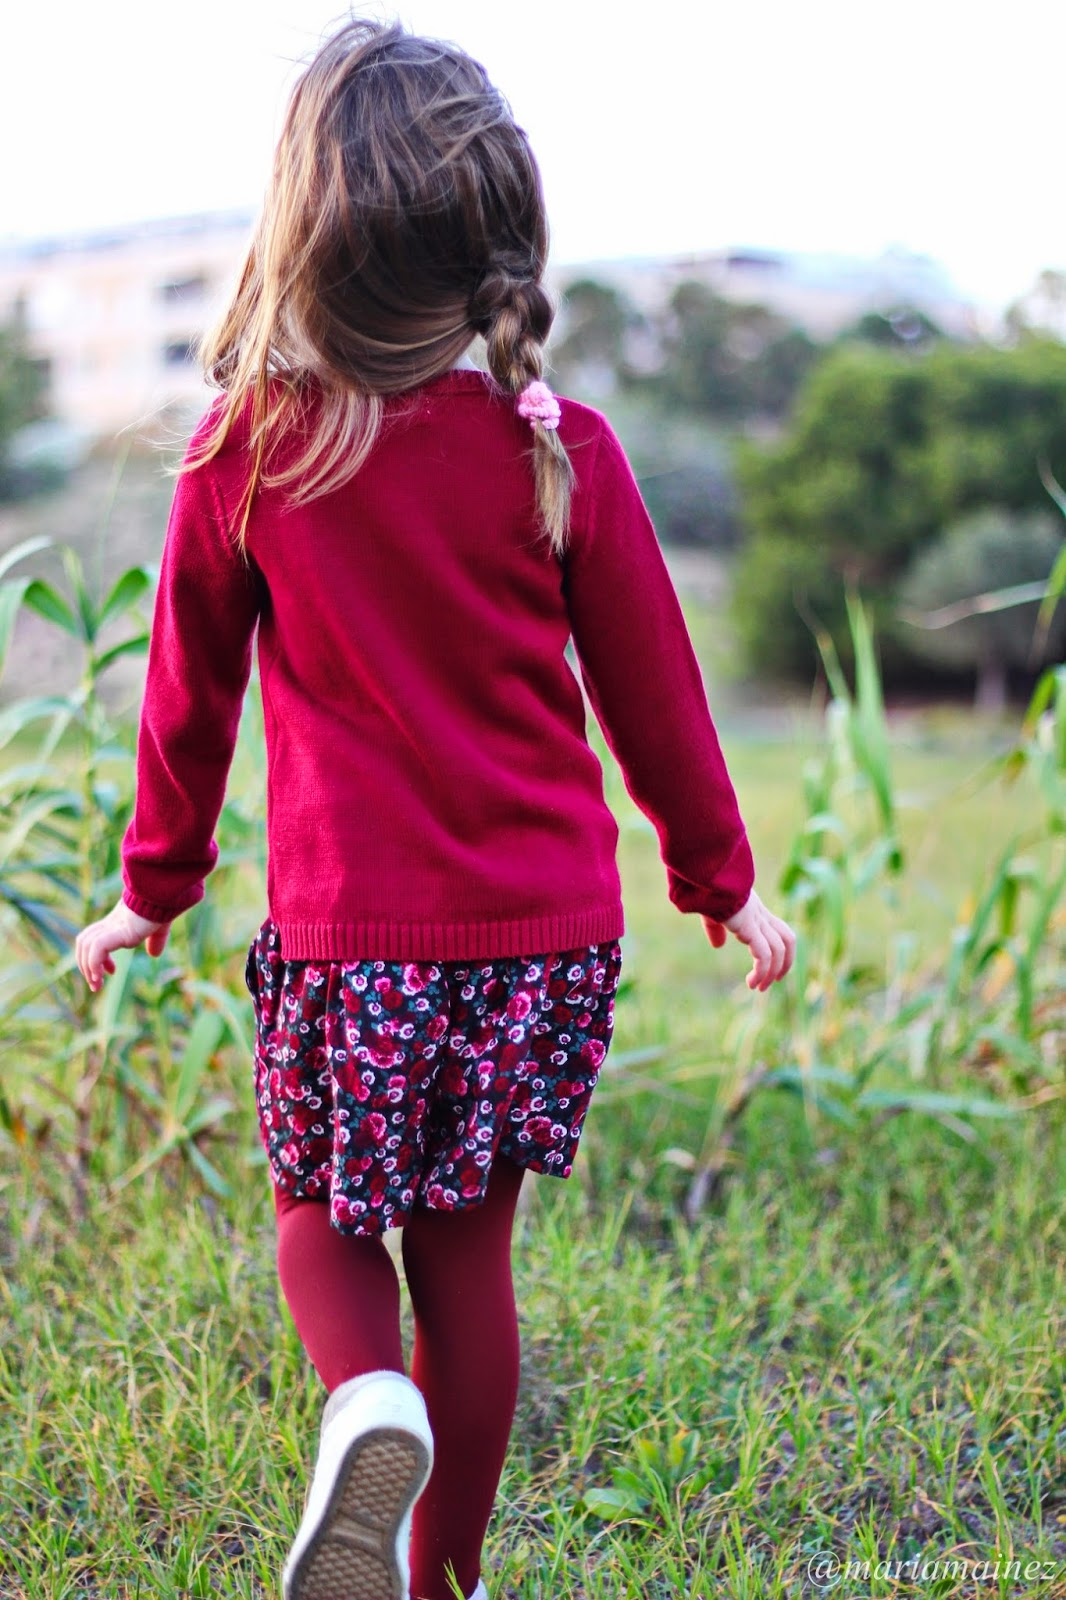 fashionkids - little blogger - H&M - Burgundy - Streetstylekids